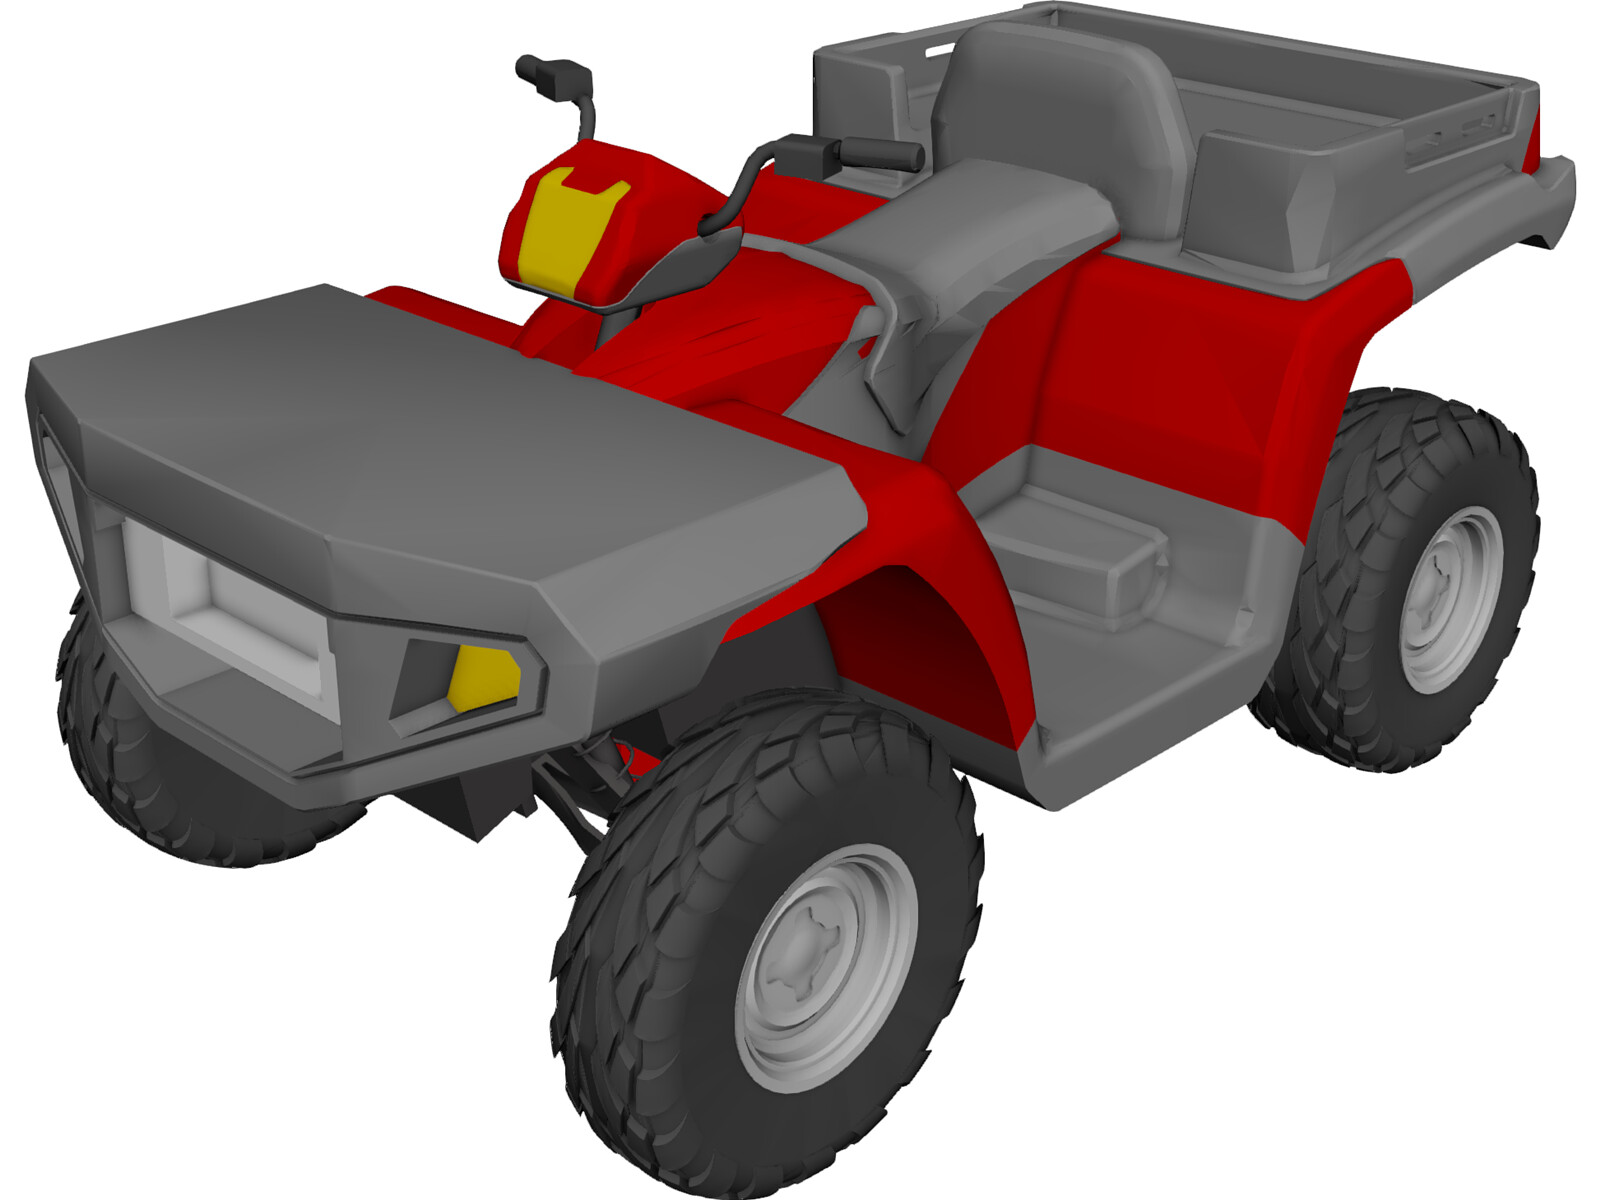 Polaris Sportsman 500 ATV